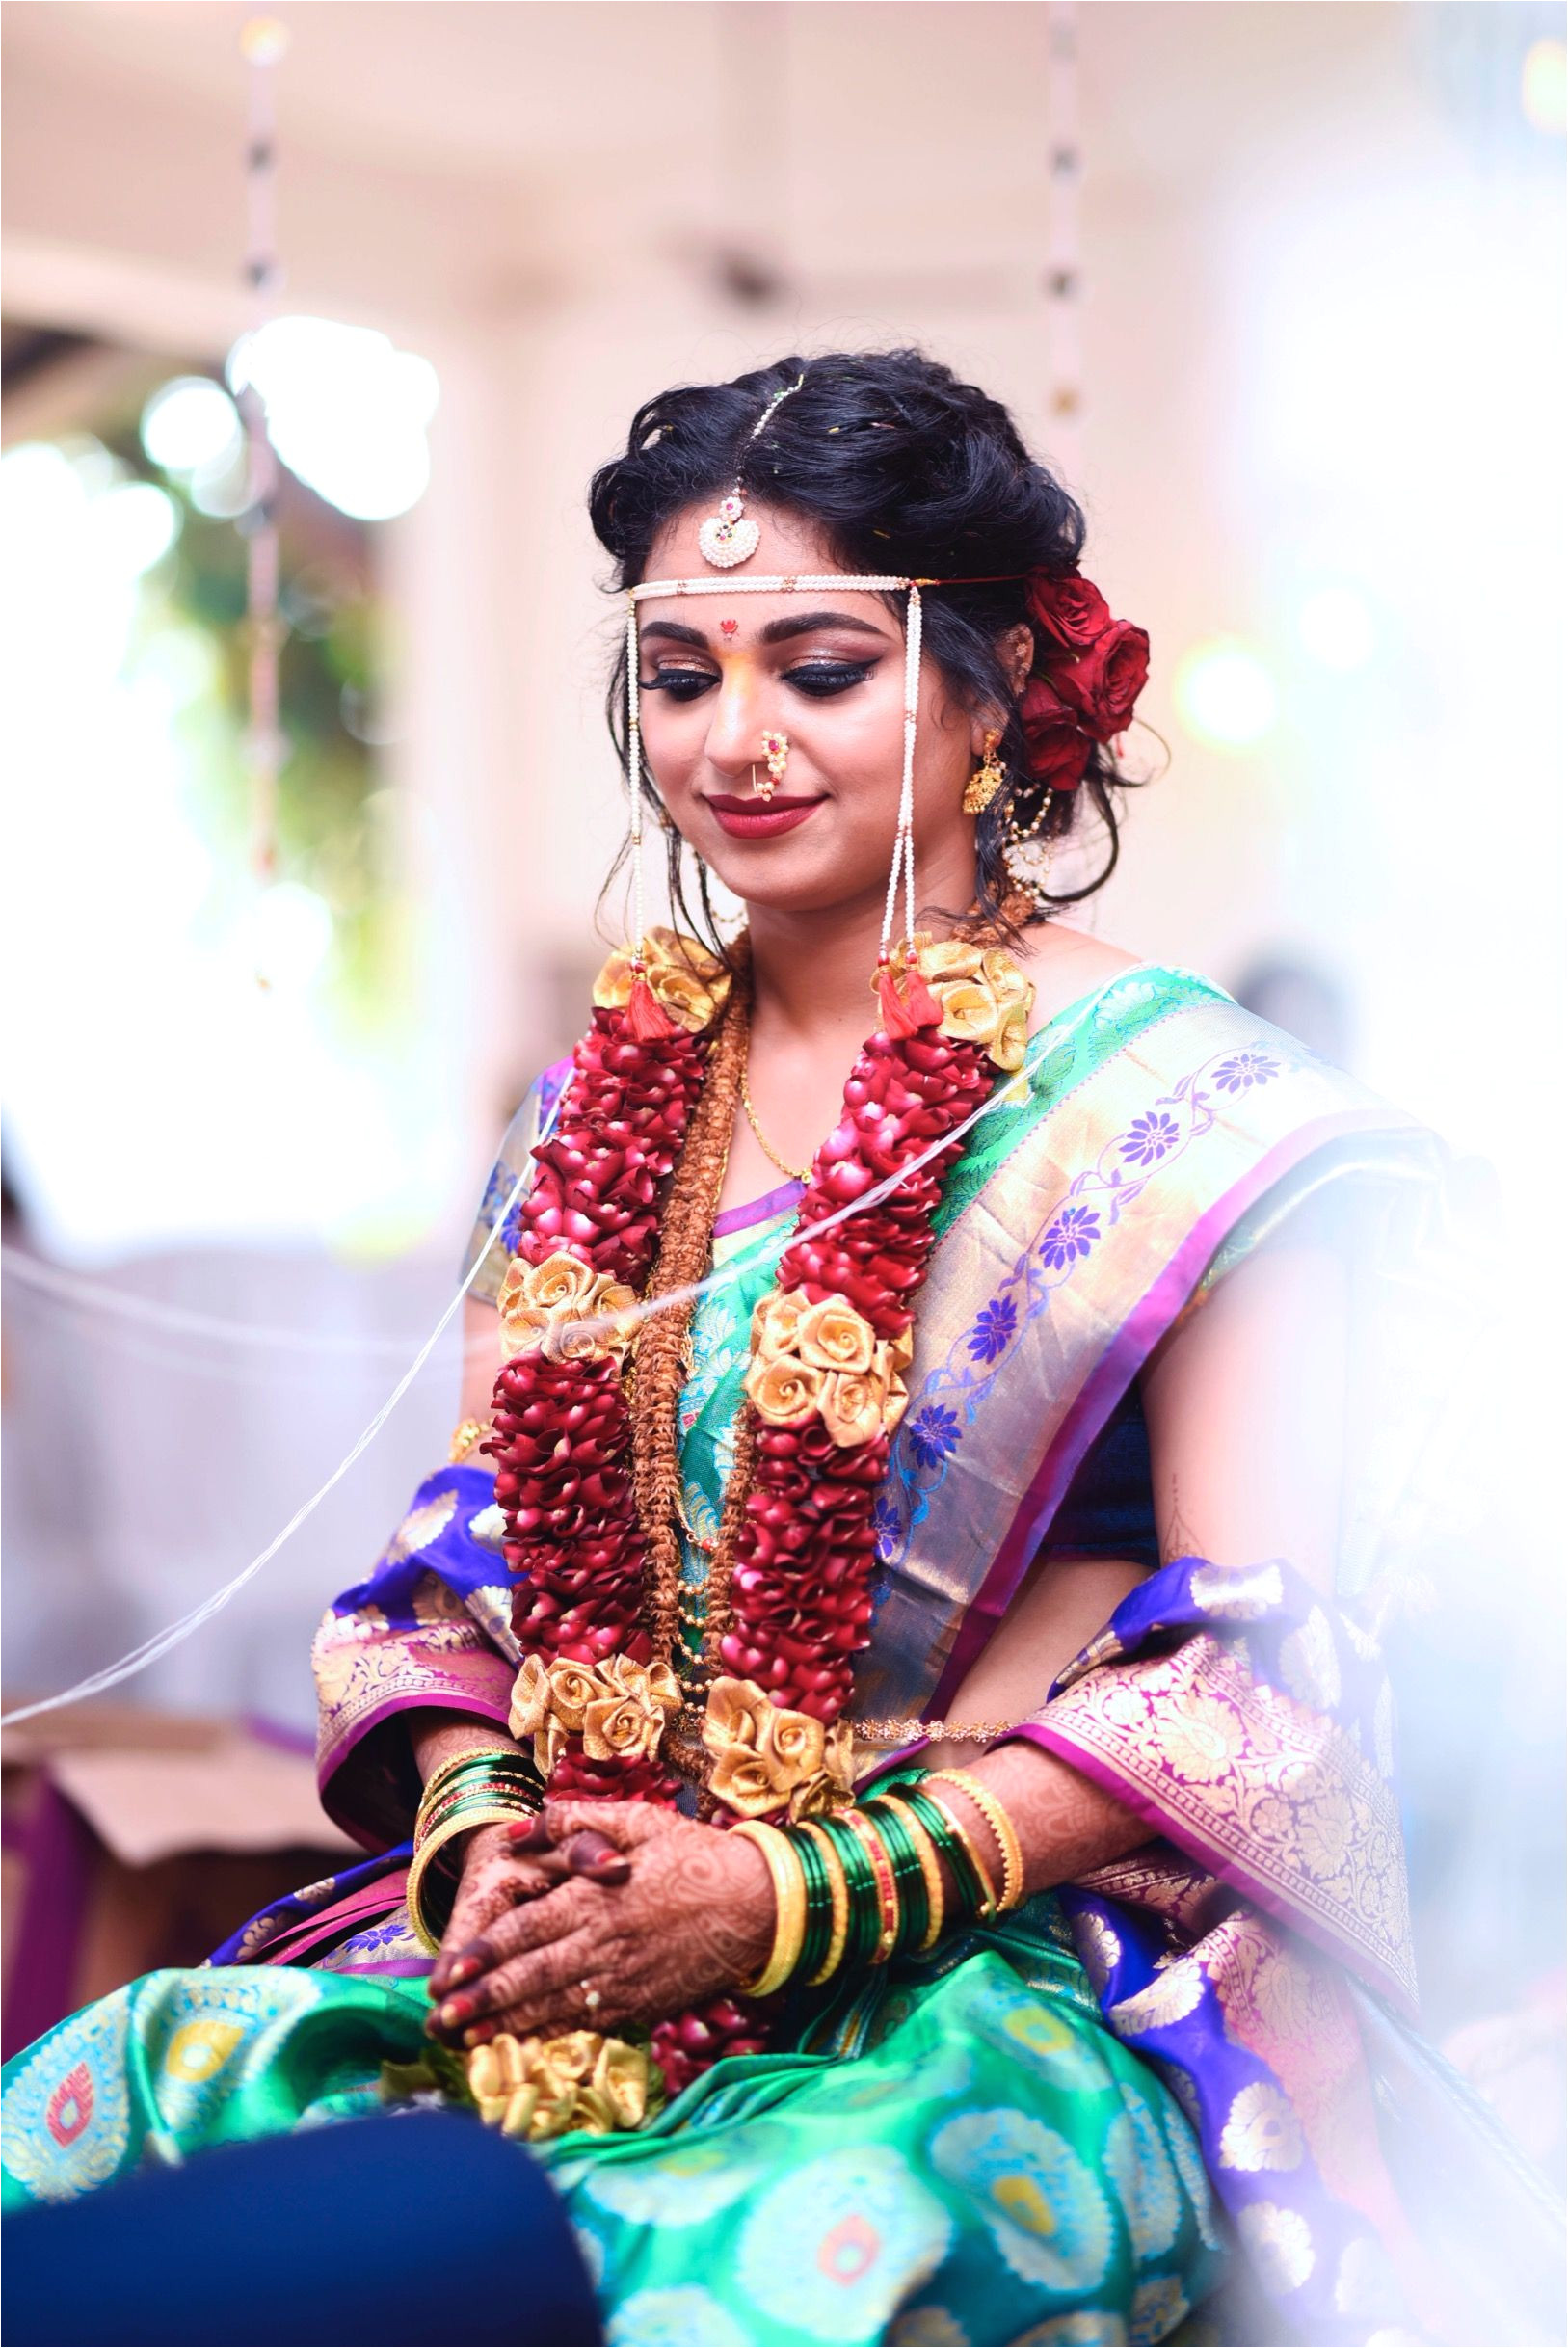 Maharashtrian Bridal Makeup and Hair by makeoversbysukanya makeup bride maharashtrianbride bridalmakeup kimkardashian girlboss bossbabe